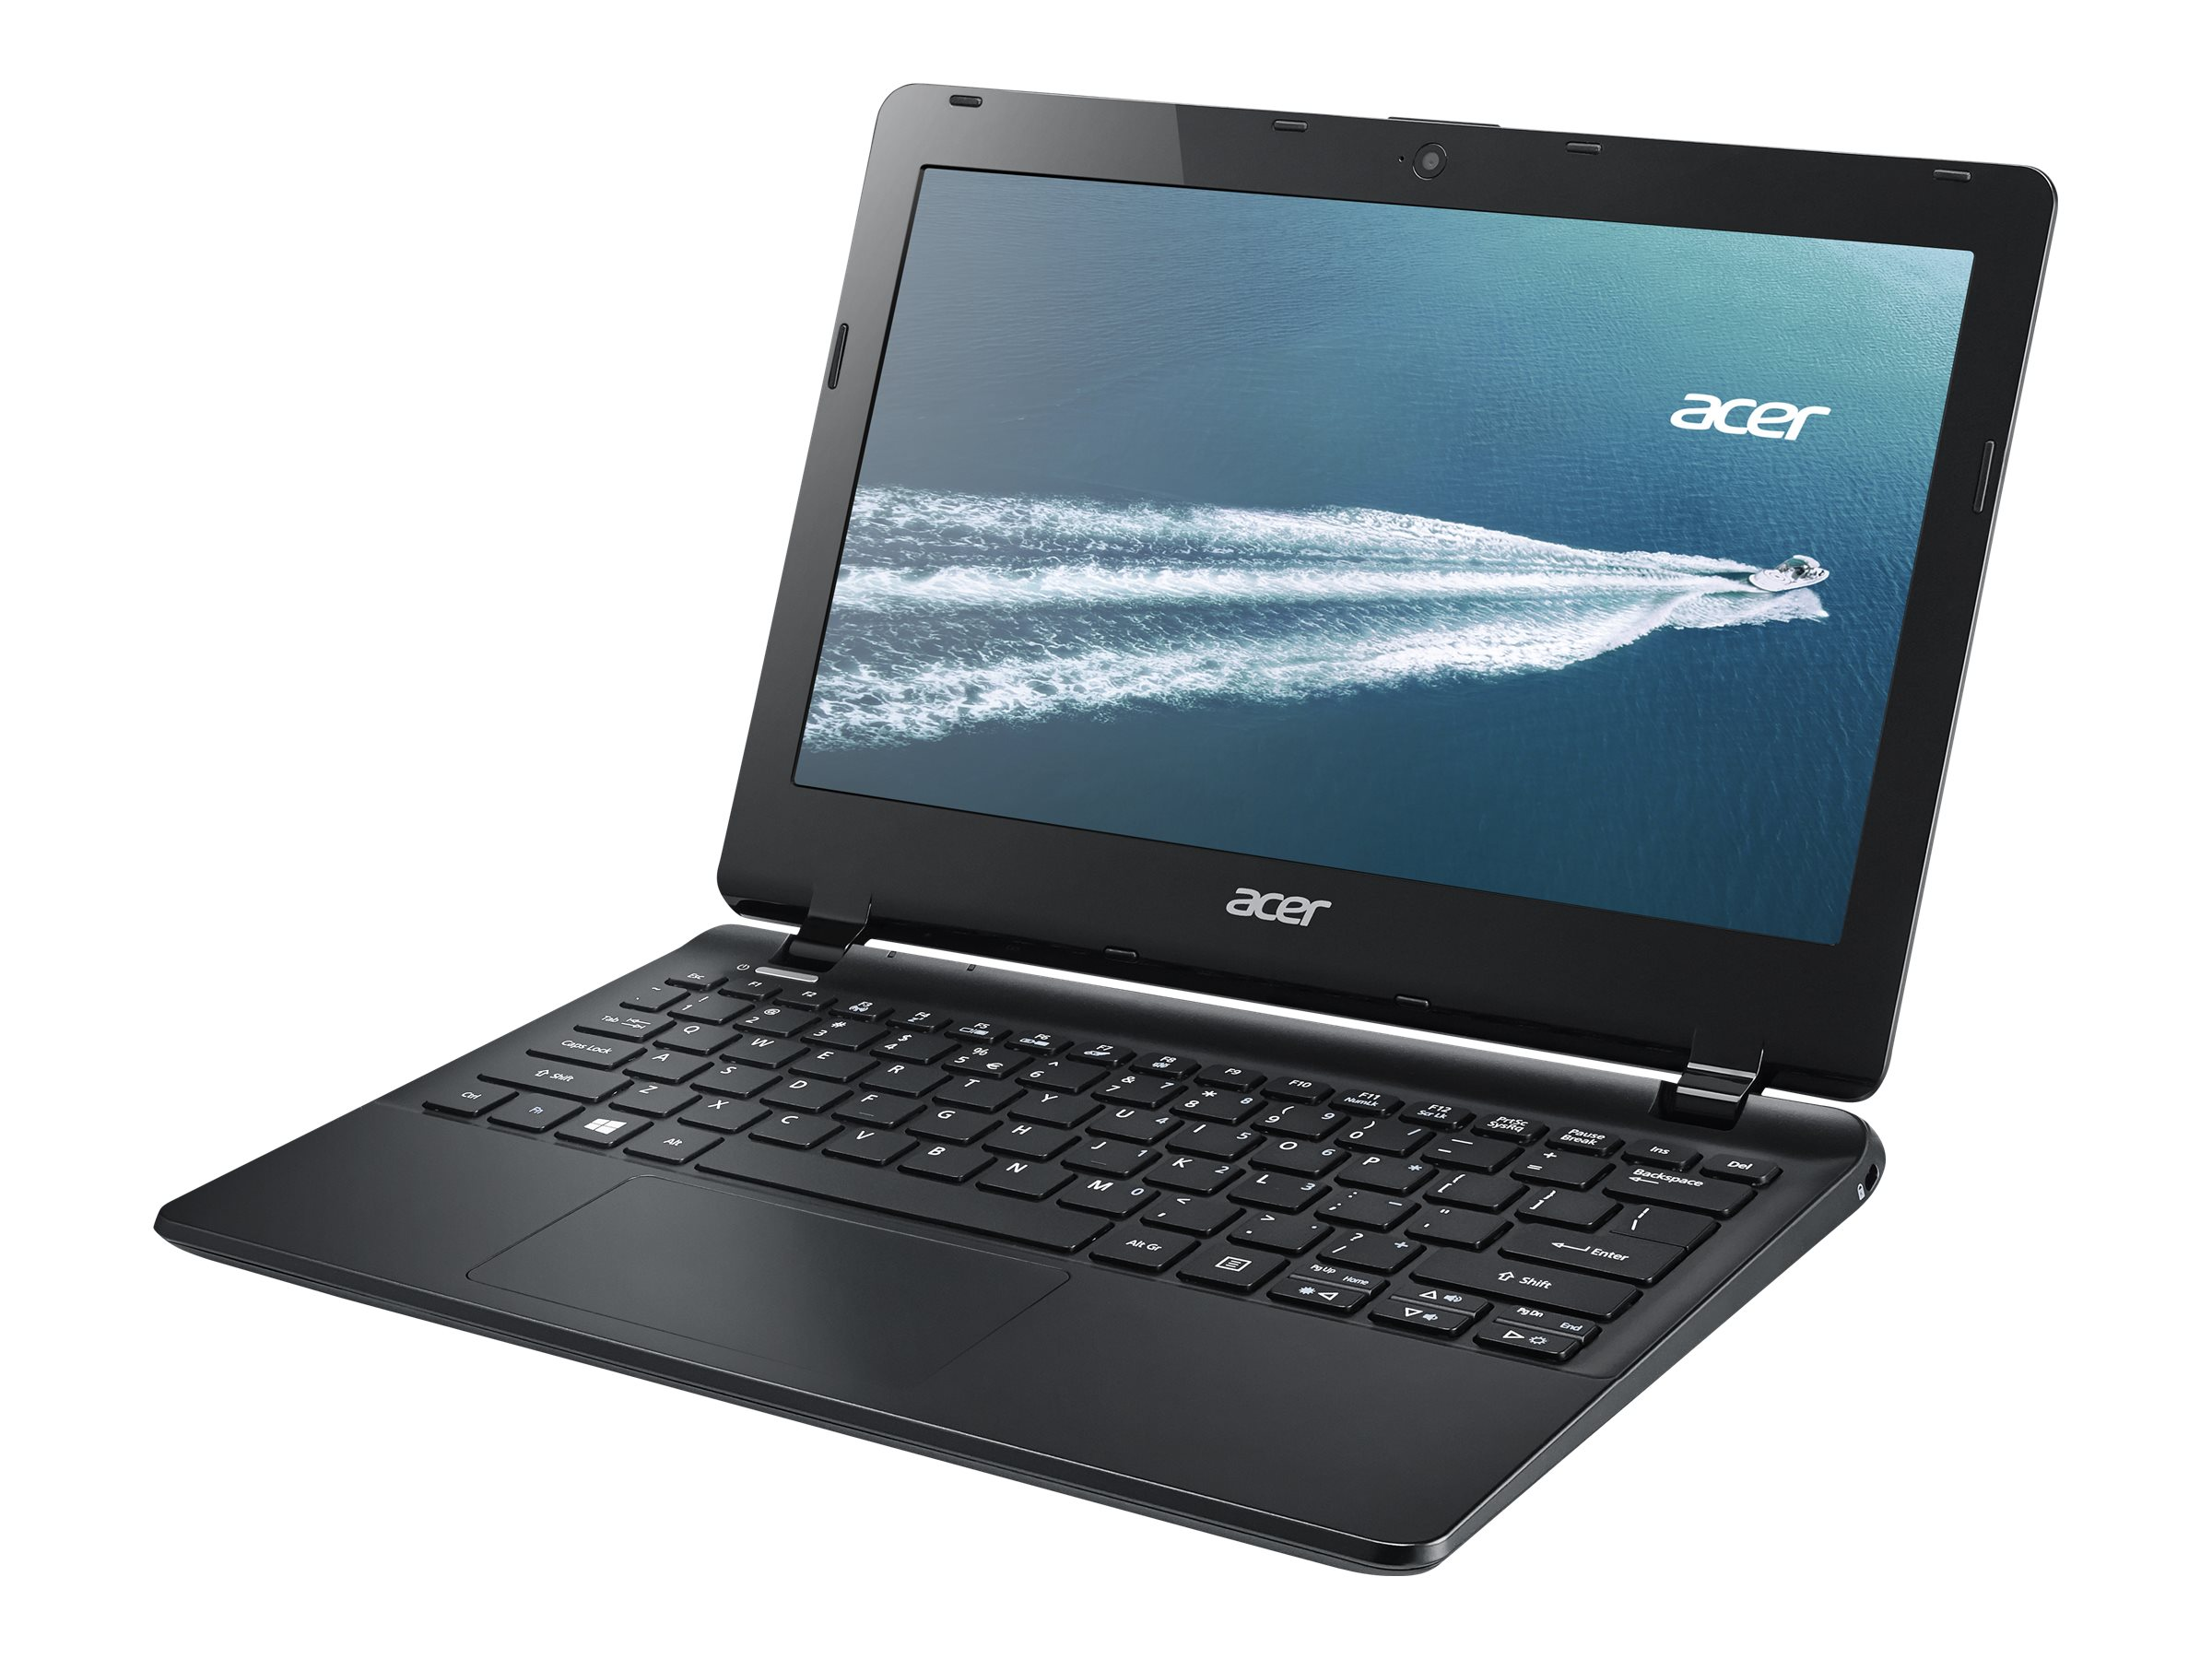 Acer TravelMate B115-MP-C6HB Celeron N2940 1.83GHz 4GB 500GB ac BT 11.6 HD MT W8.1P64, NX.VA2AA.005, 18159175, Notebooks